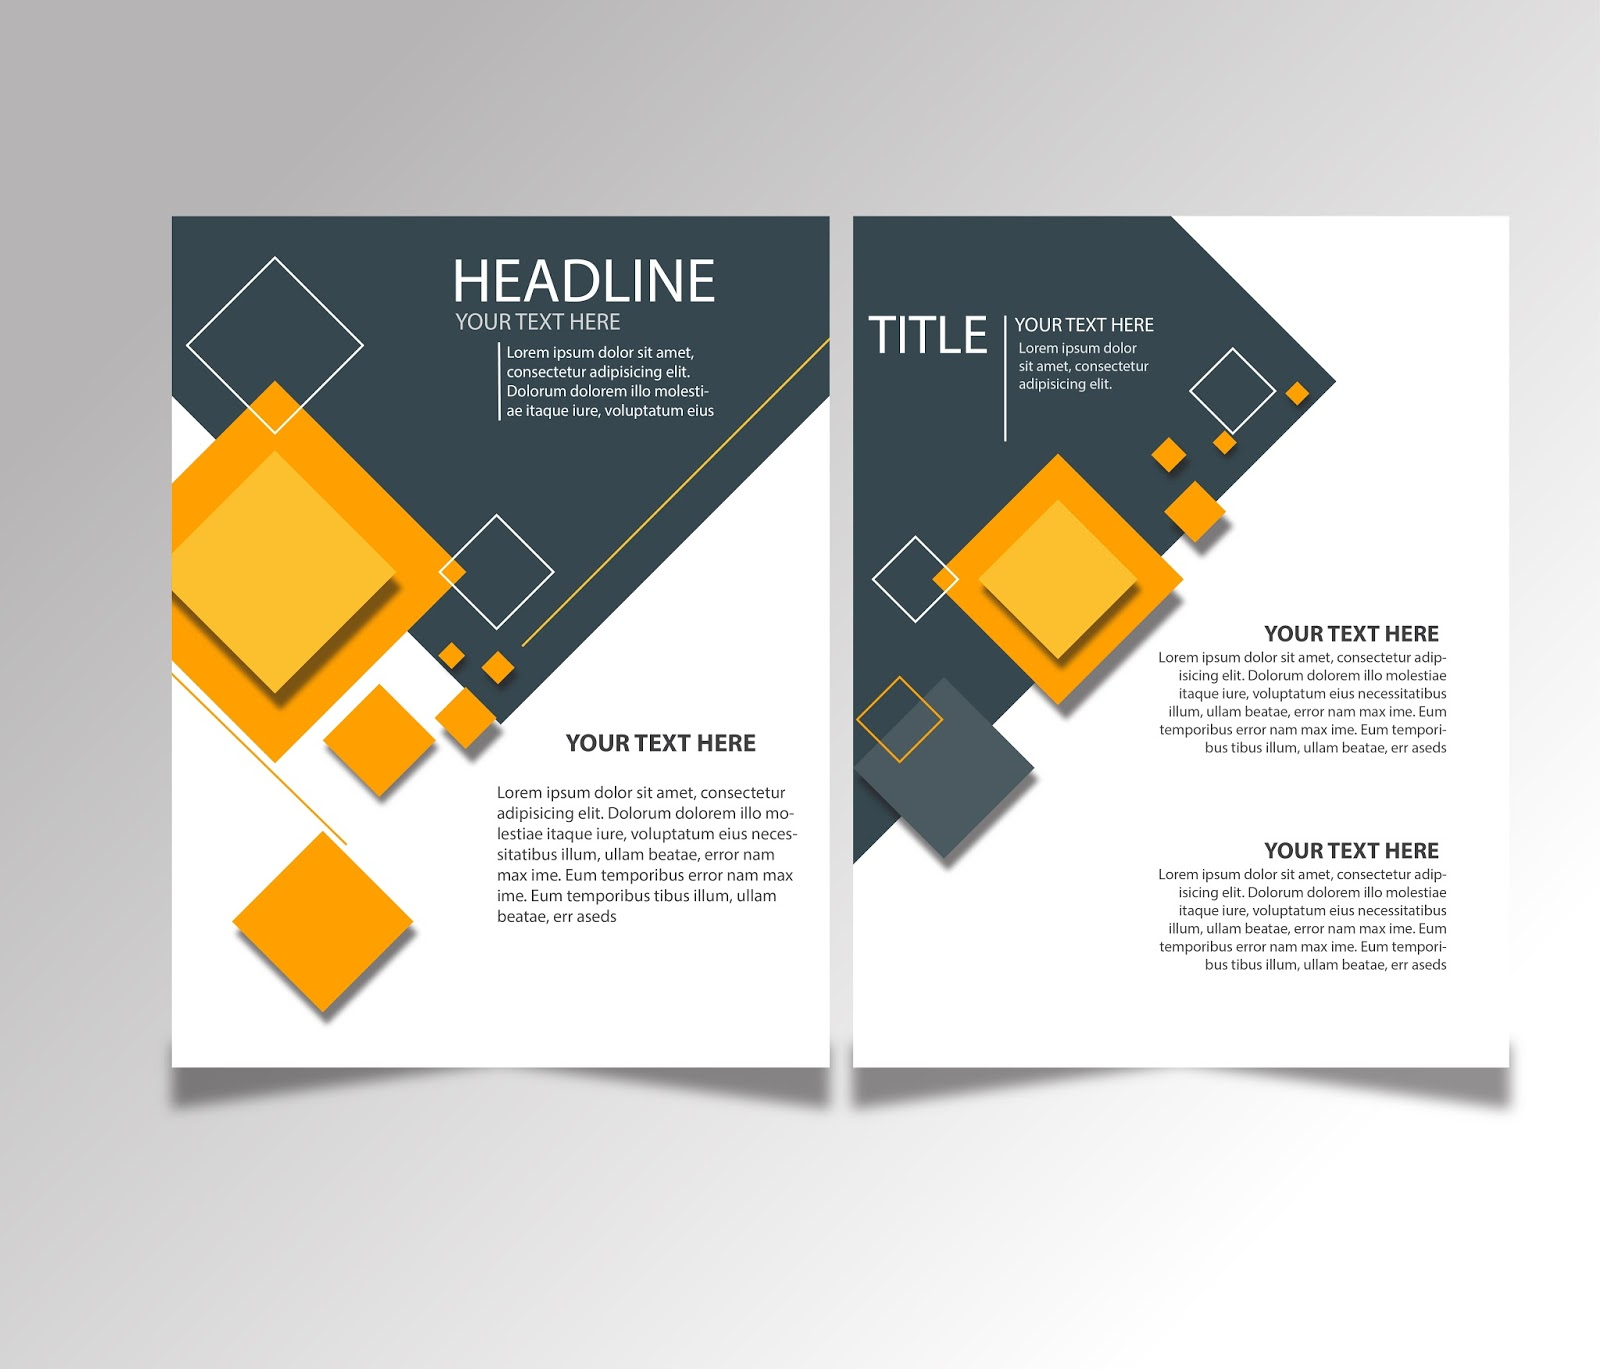 FREE DOWNLOAD BROCHURE DESIGN TEMPLATES AI FILES Ideosprocess - Brochures design templates